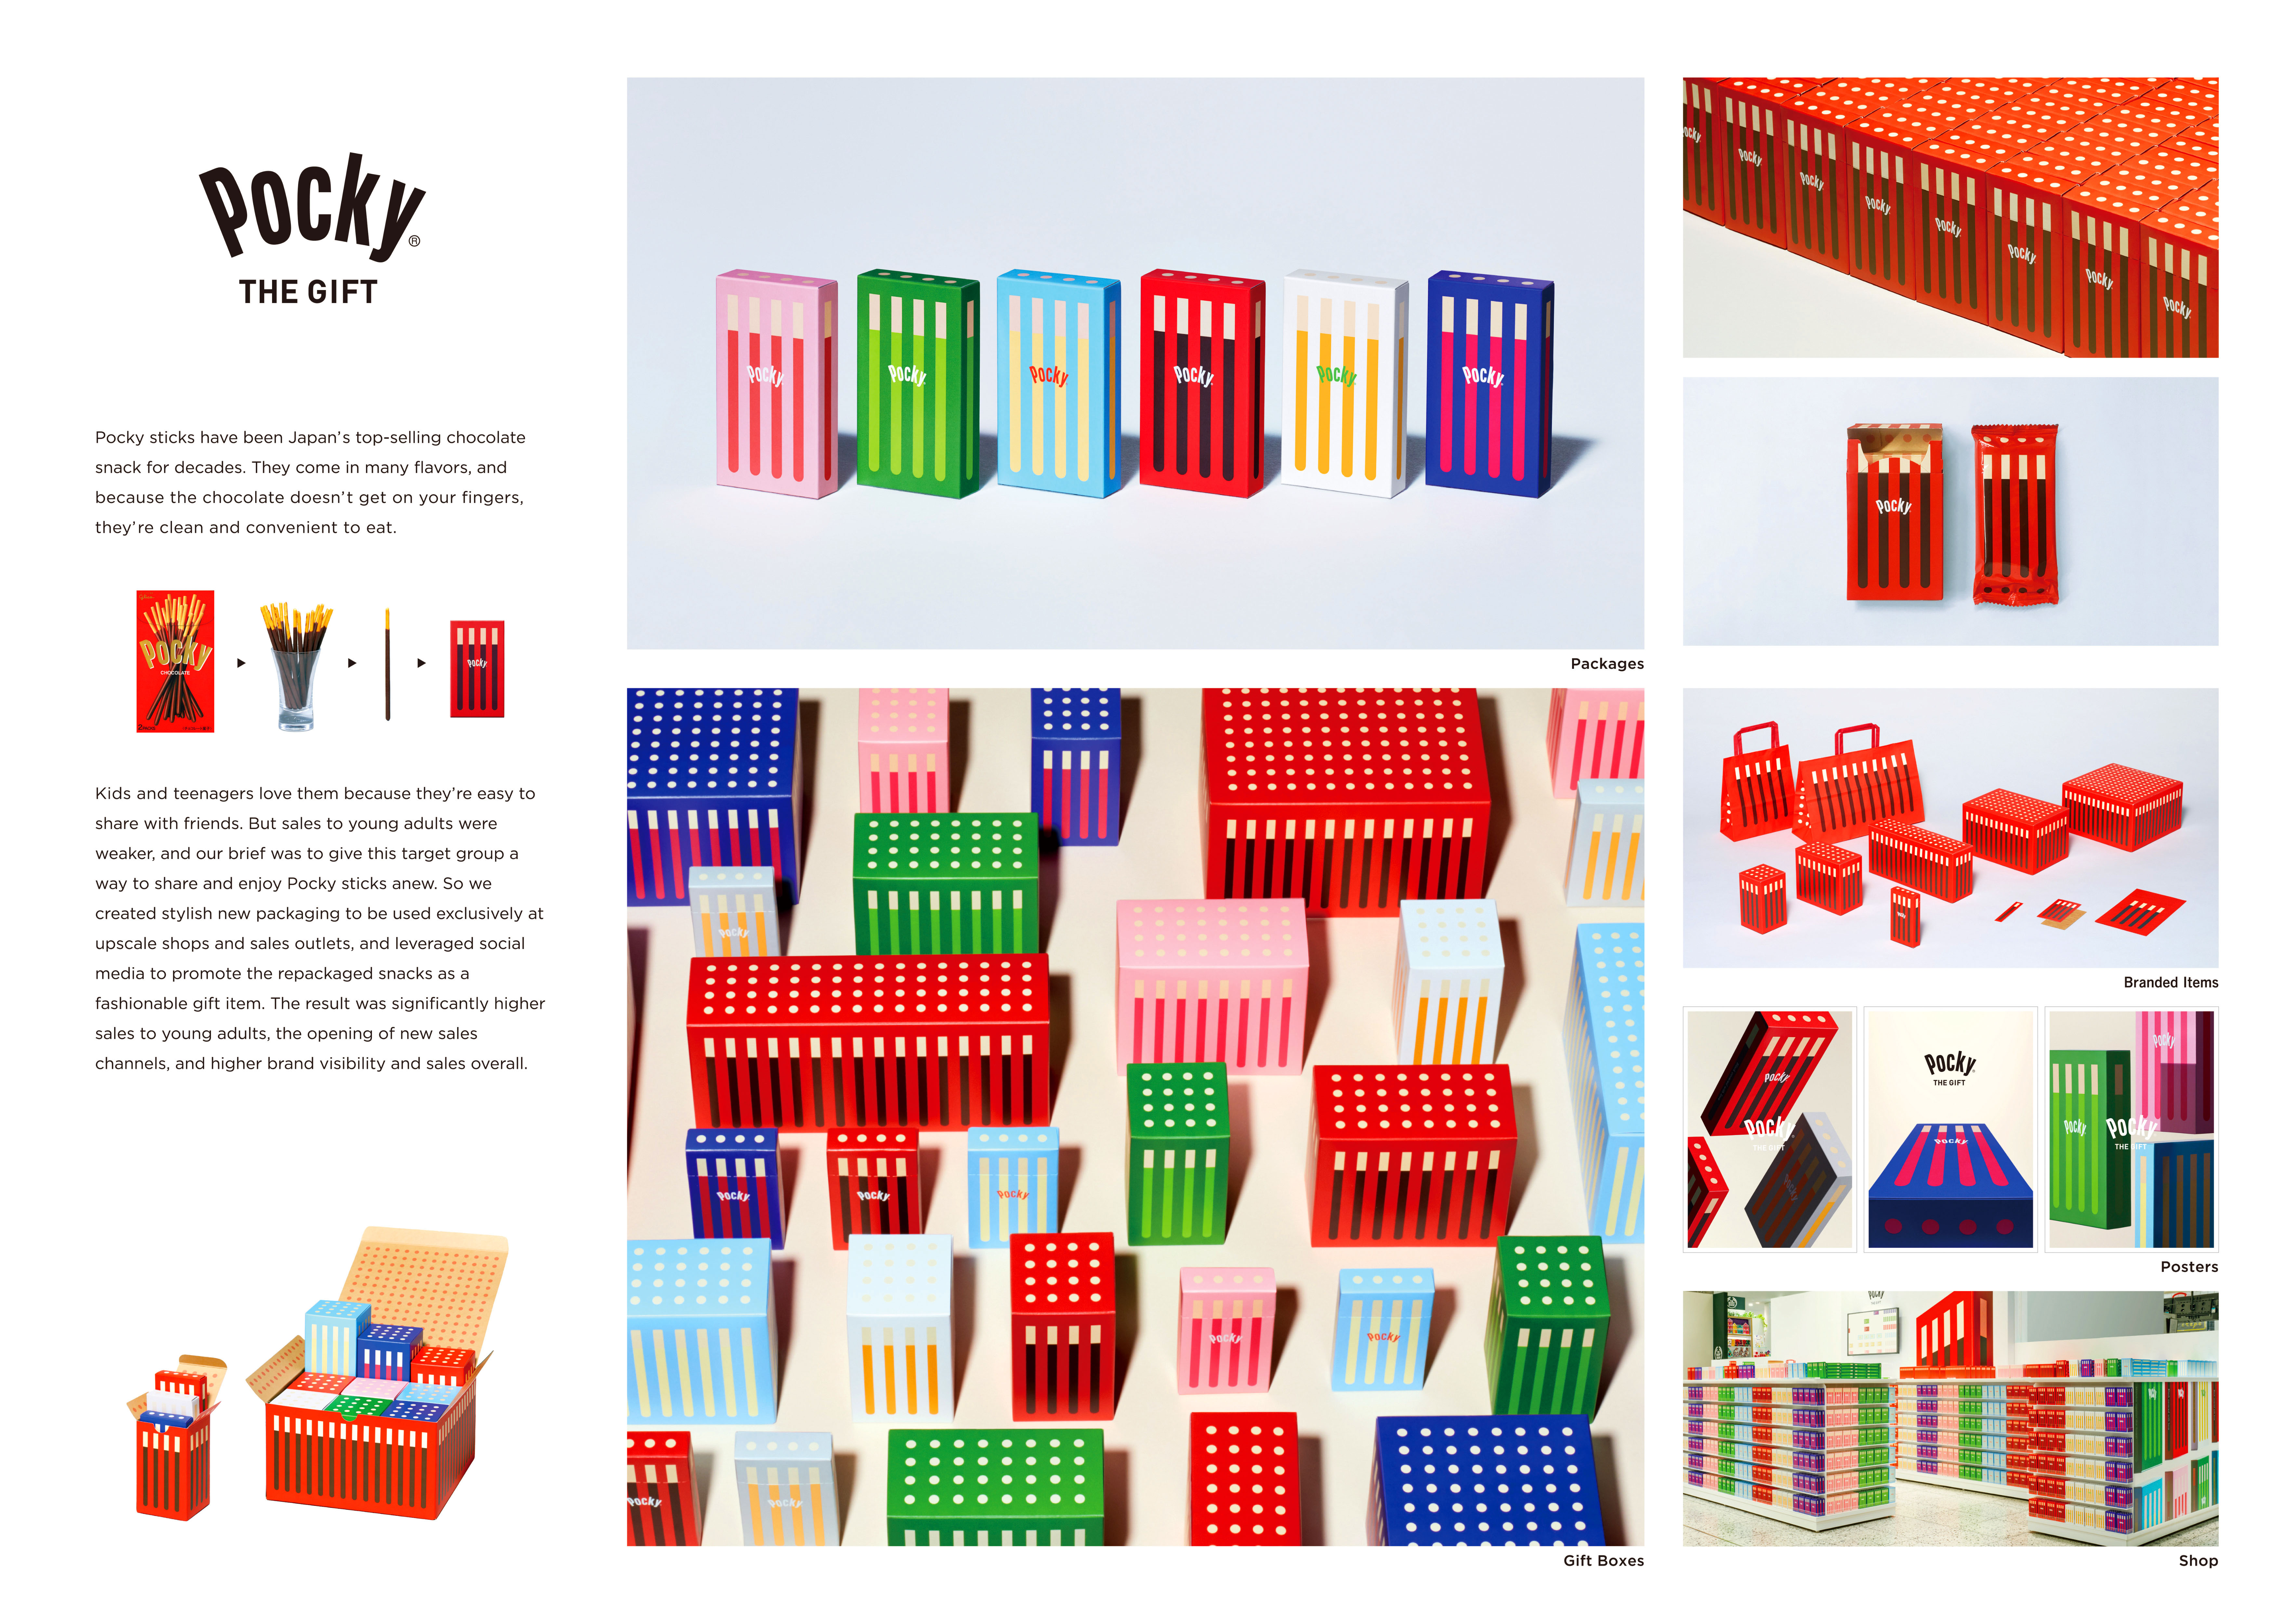 Pocky The Gift Package